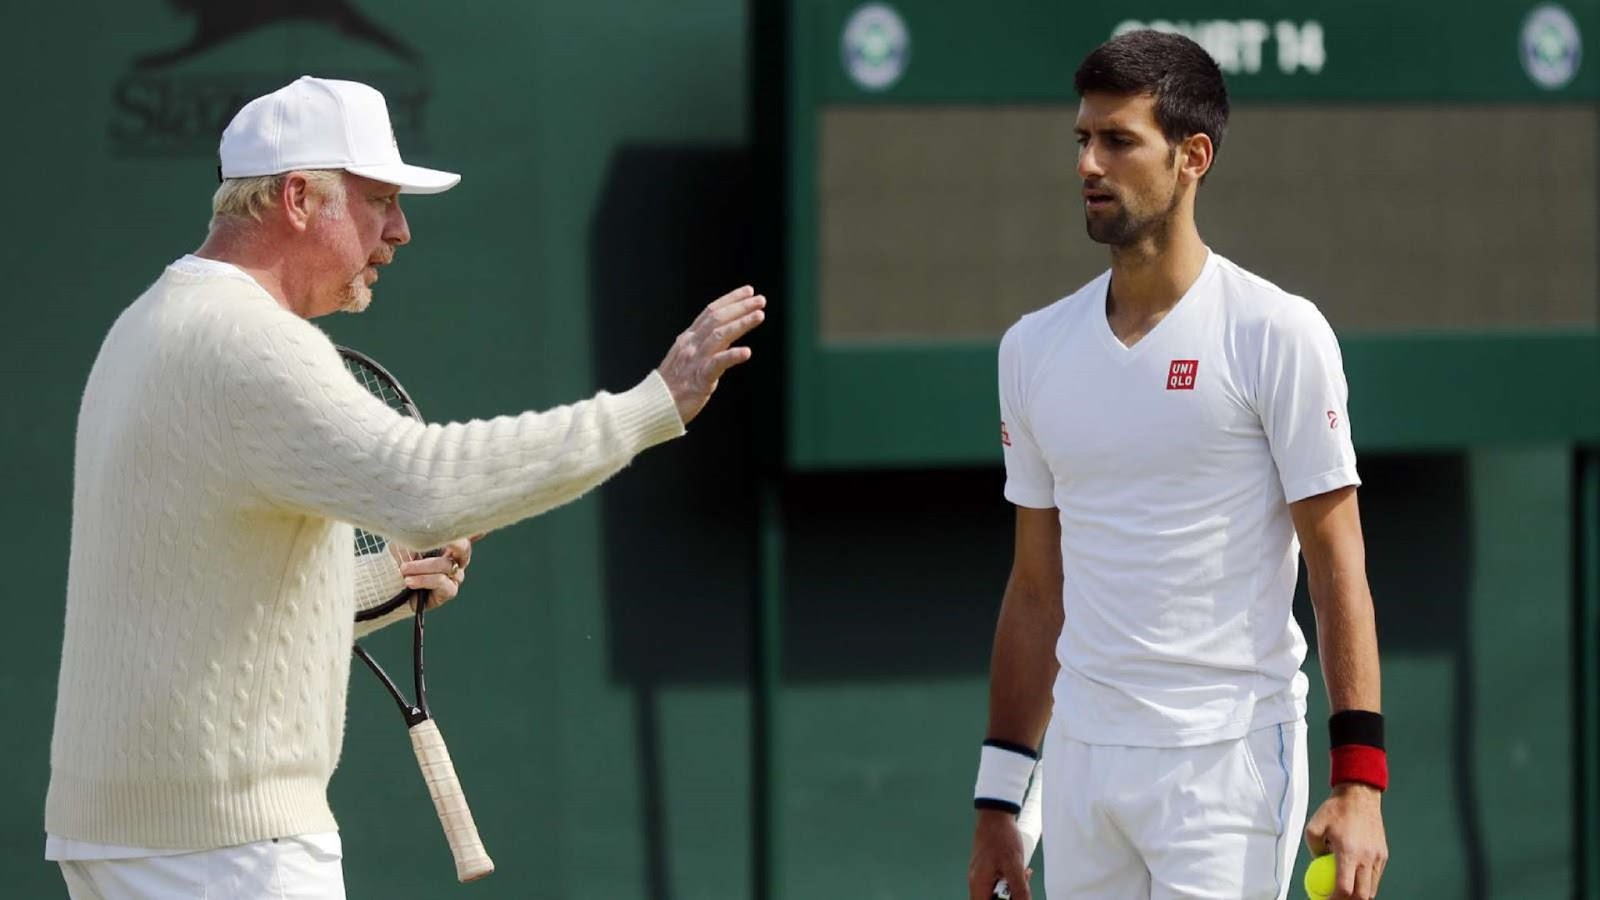 NOVAK DJOKOVIC, BORIS BECKER 5